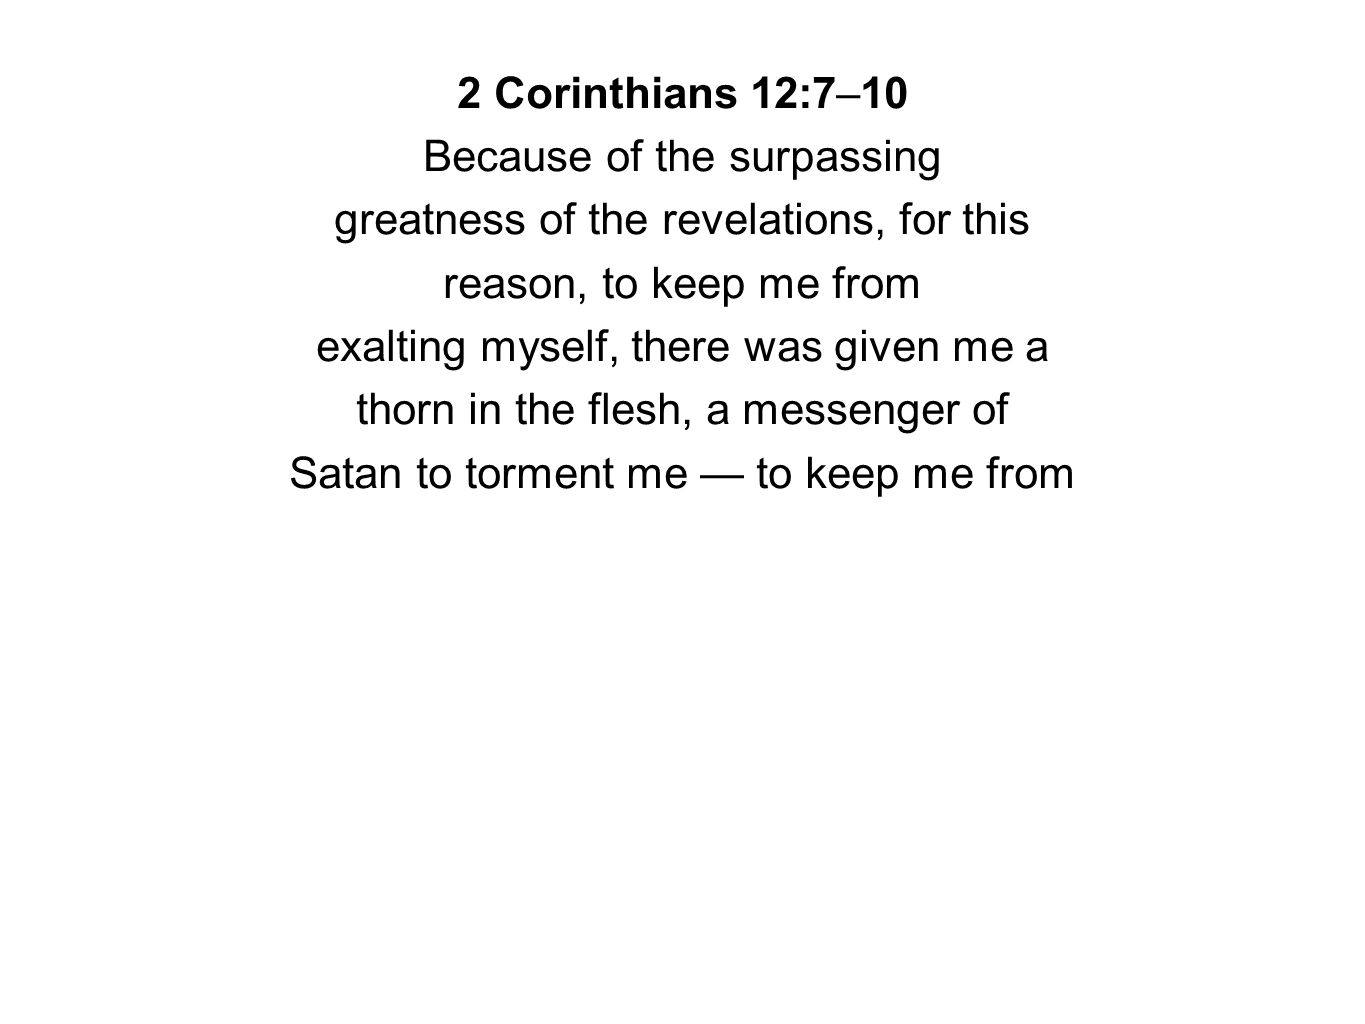 2 Corinthians 12:7–10 Because of the surpassing greatness of the revelations, for this reason, to keep me from exalting myself, there was given me a t